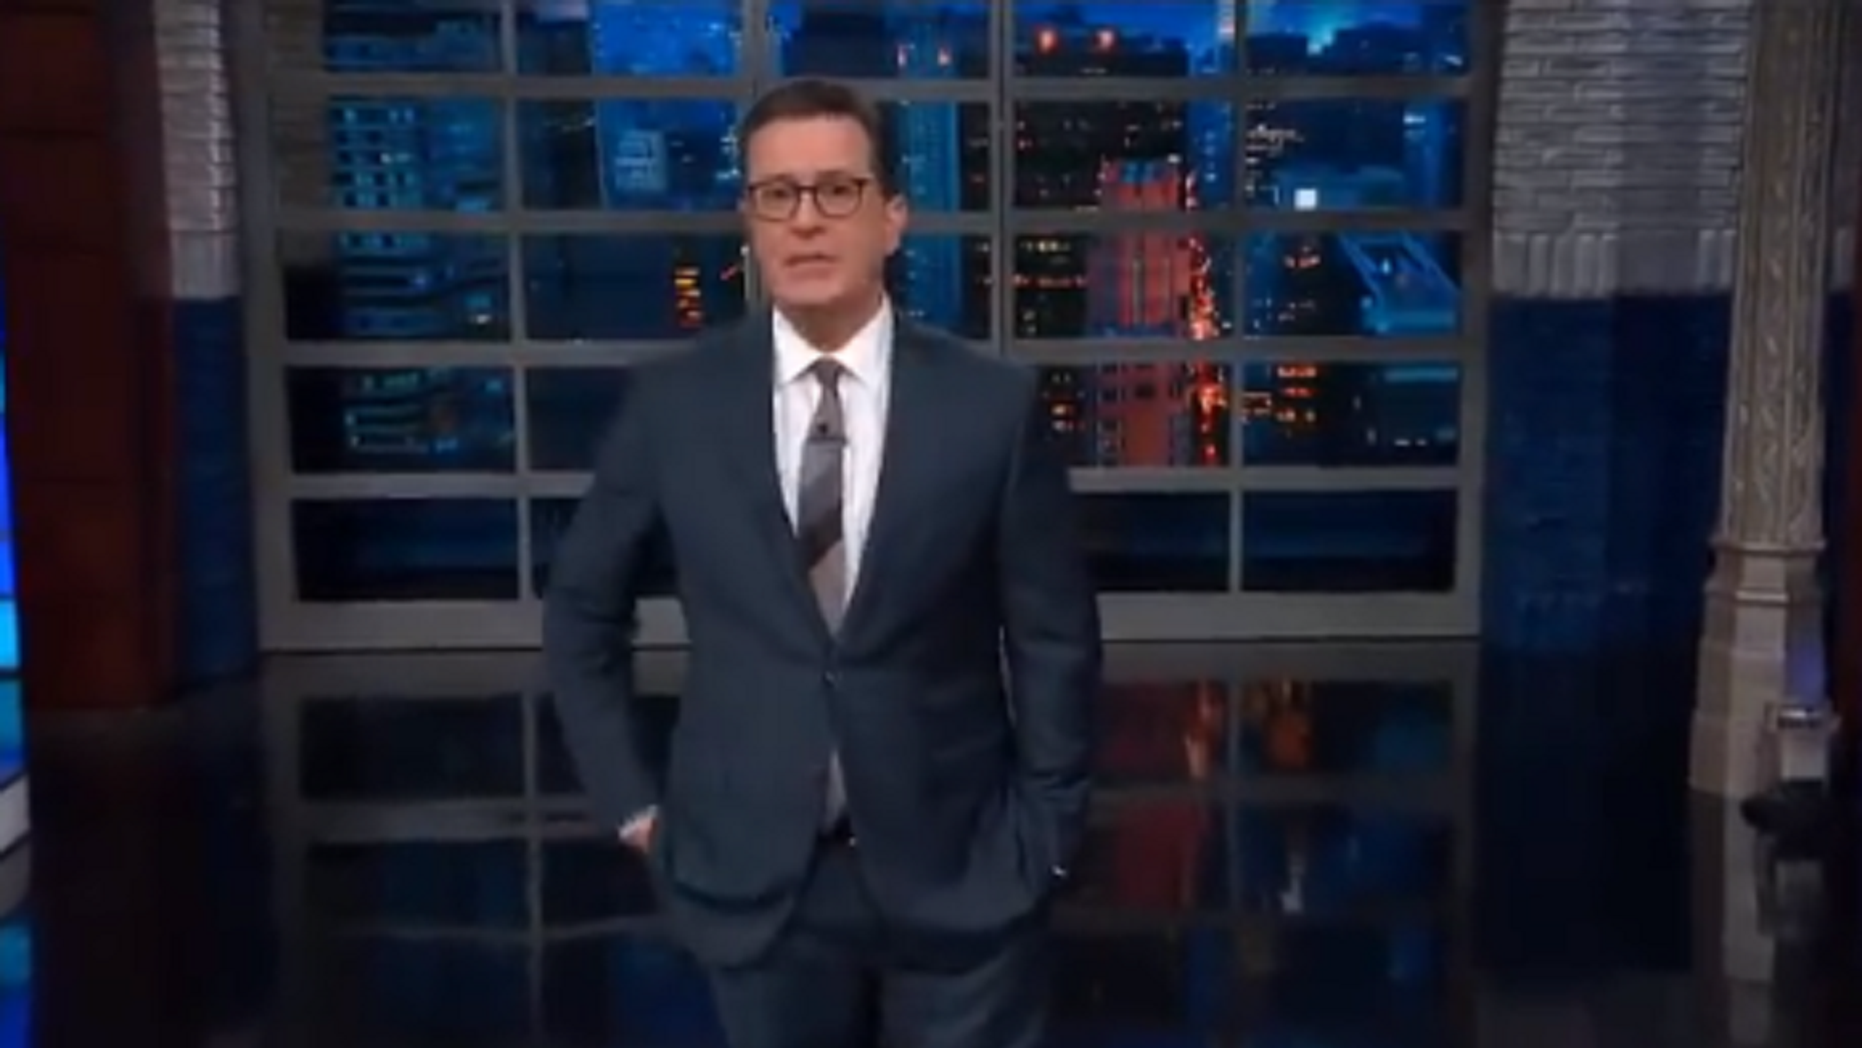 Late Show host Stephen Colbert discussed the Democrats taking the House on Tuesday stating the party can now